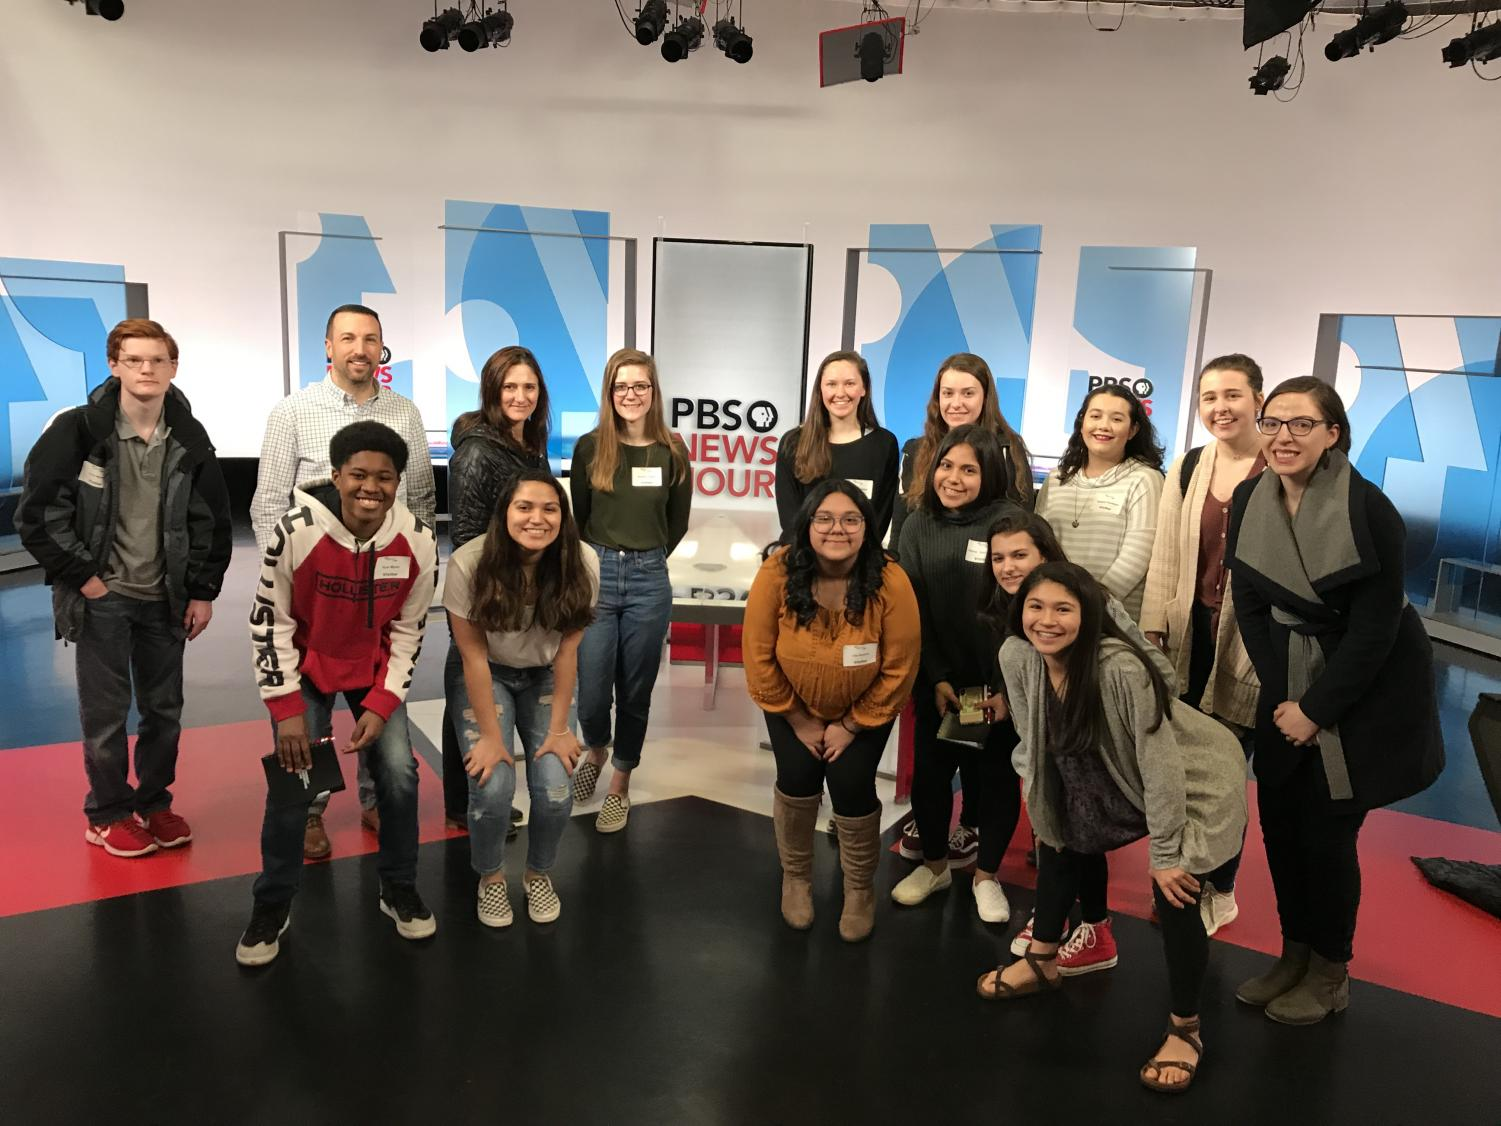 Broadcast and Introduction to Journalism students pose in the NewsHour studio after a tour as part of their day spent at PBS.